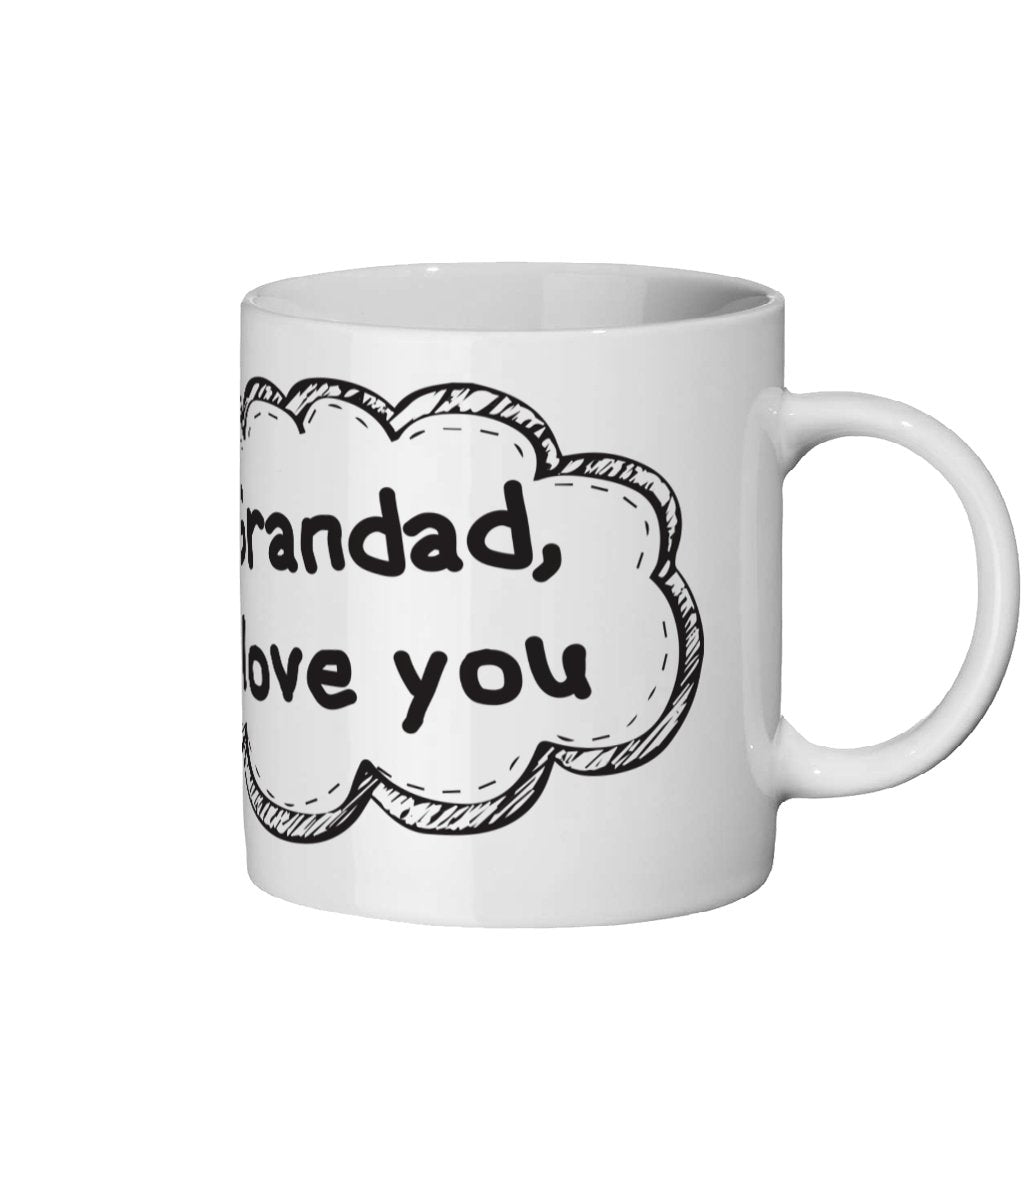 Grandad I Love You Ceramic Mug 11oz - The Gift Project